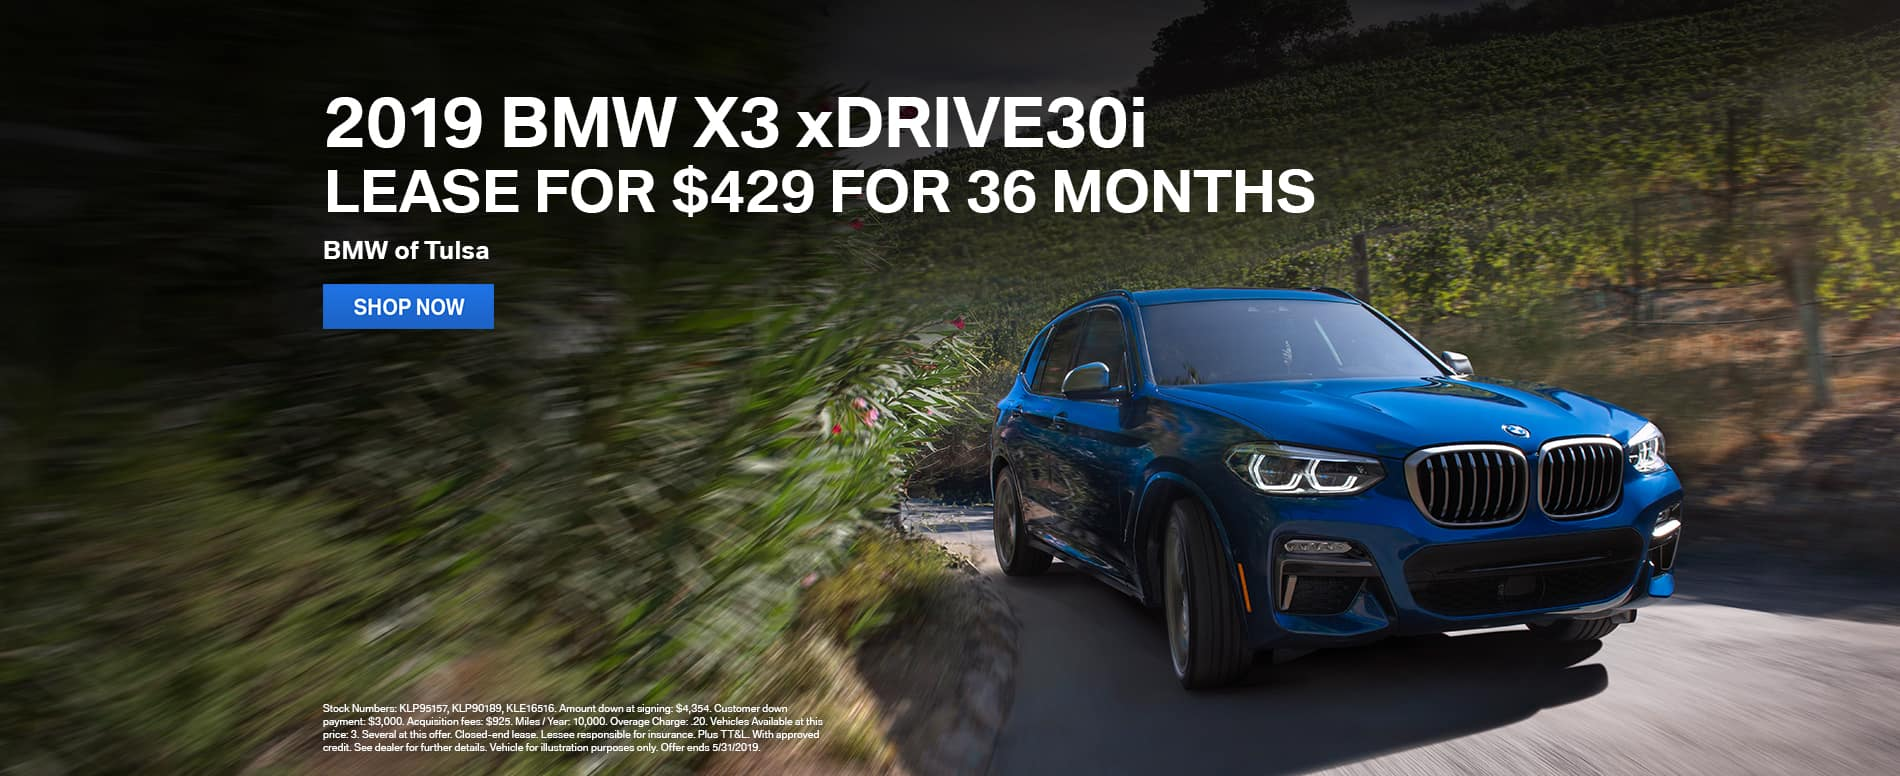 lease-2019-bmw-x3-xdrive30i-for-429-per-month-tulsa